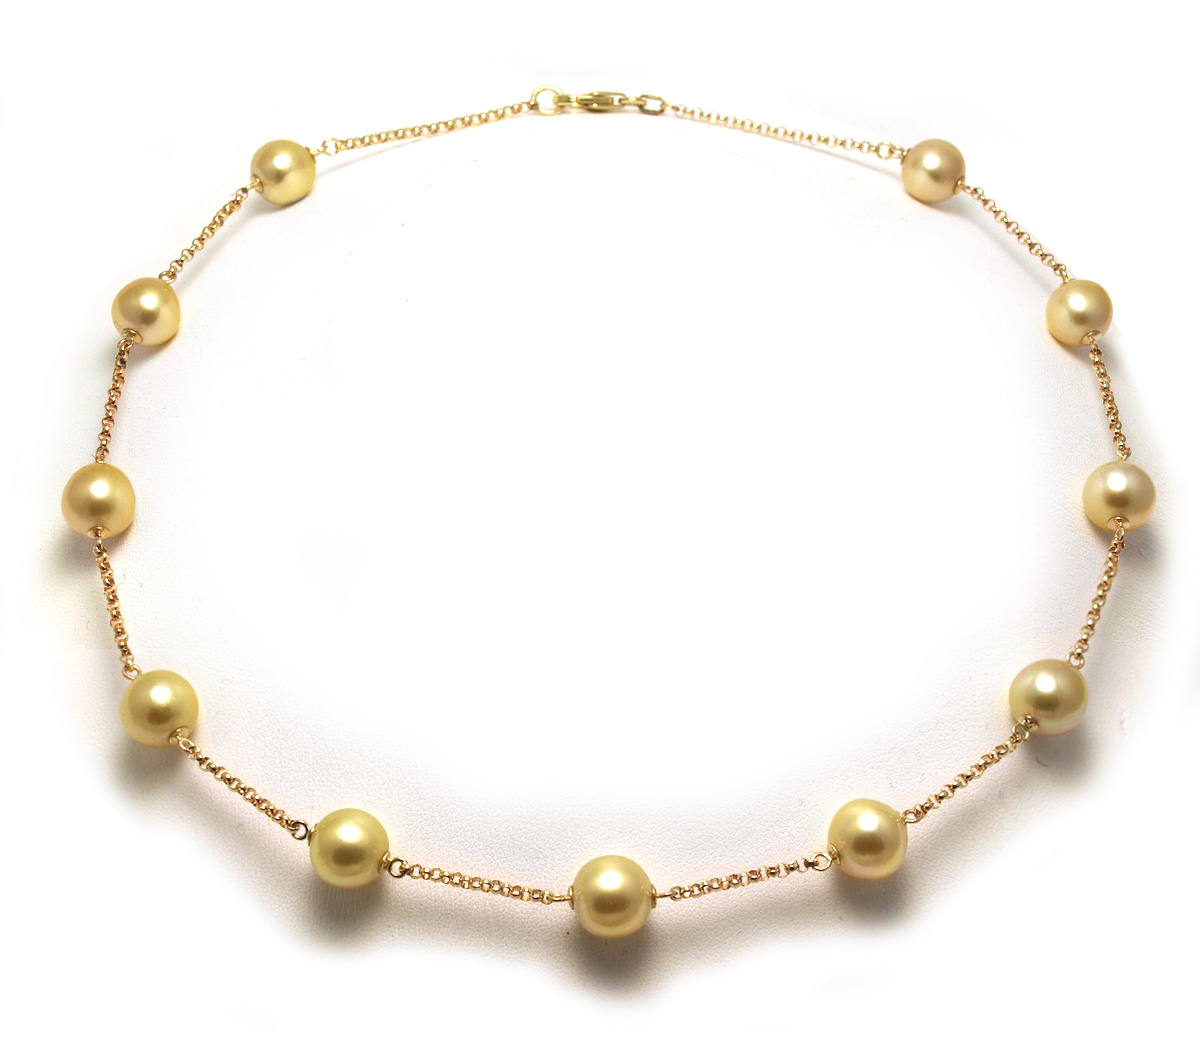 Tincup Golden South Sea Pearl Necklace Choice Of Pearl Sizes 14k White Or  Yellow Gold $895 And Up View Golden South Sea Pearl Necklace